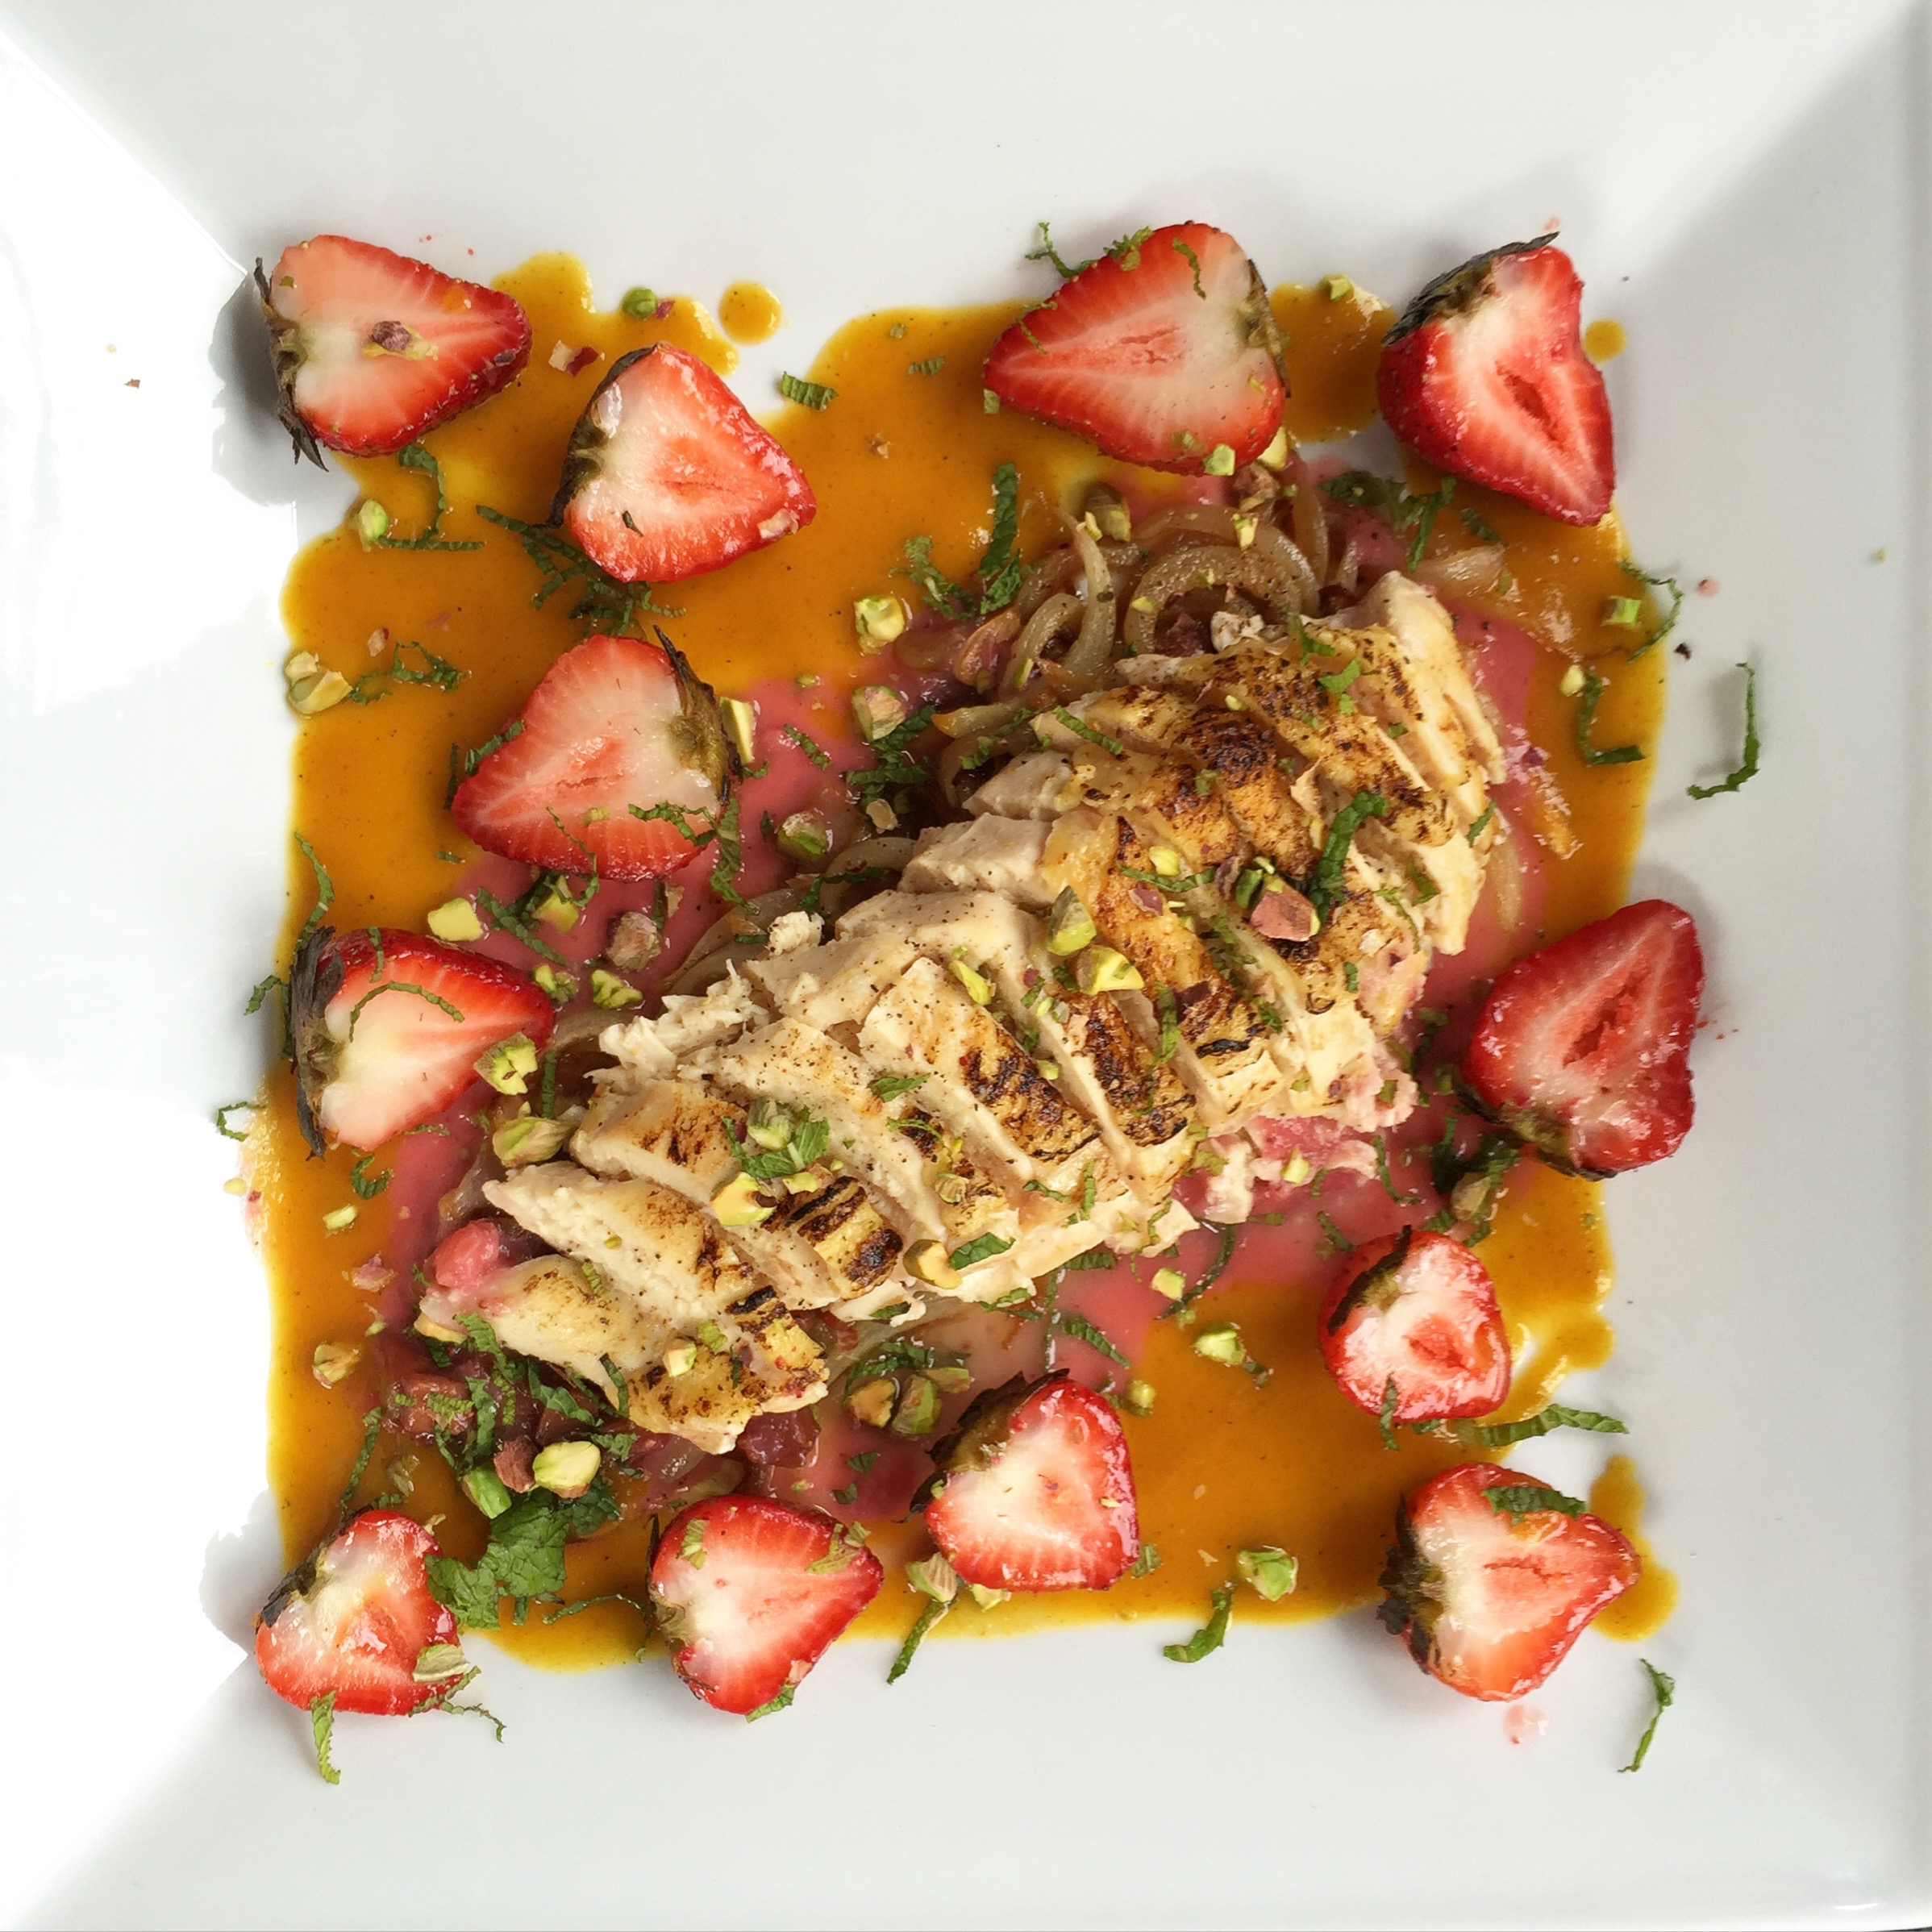 Sousvide Chicken Breast, Roasted Strawberry, Caramelized Onion, Peach Red Wine Sauce, Peach curry, Pistachio and Mint